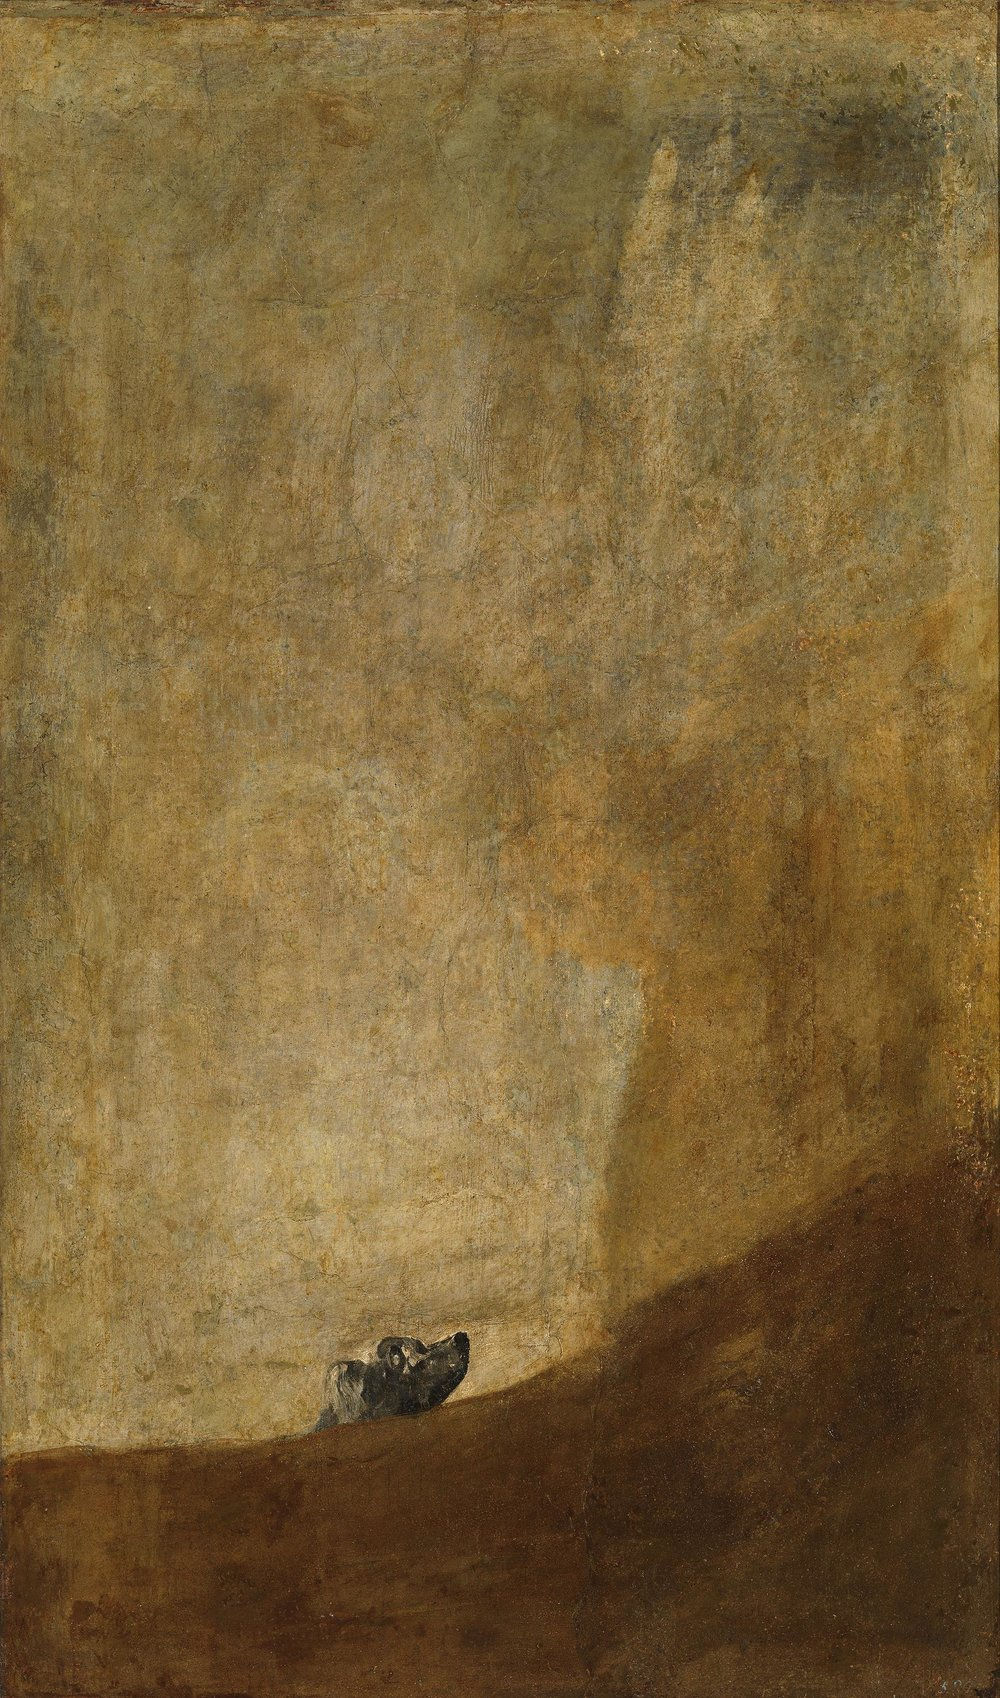 Francisco Goya,  'O Cão'